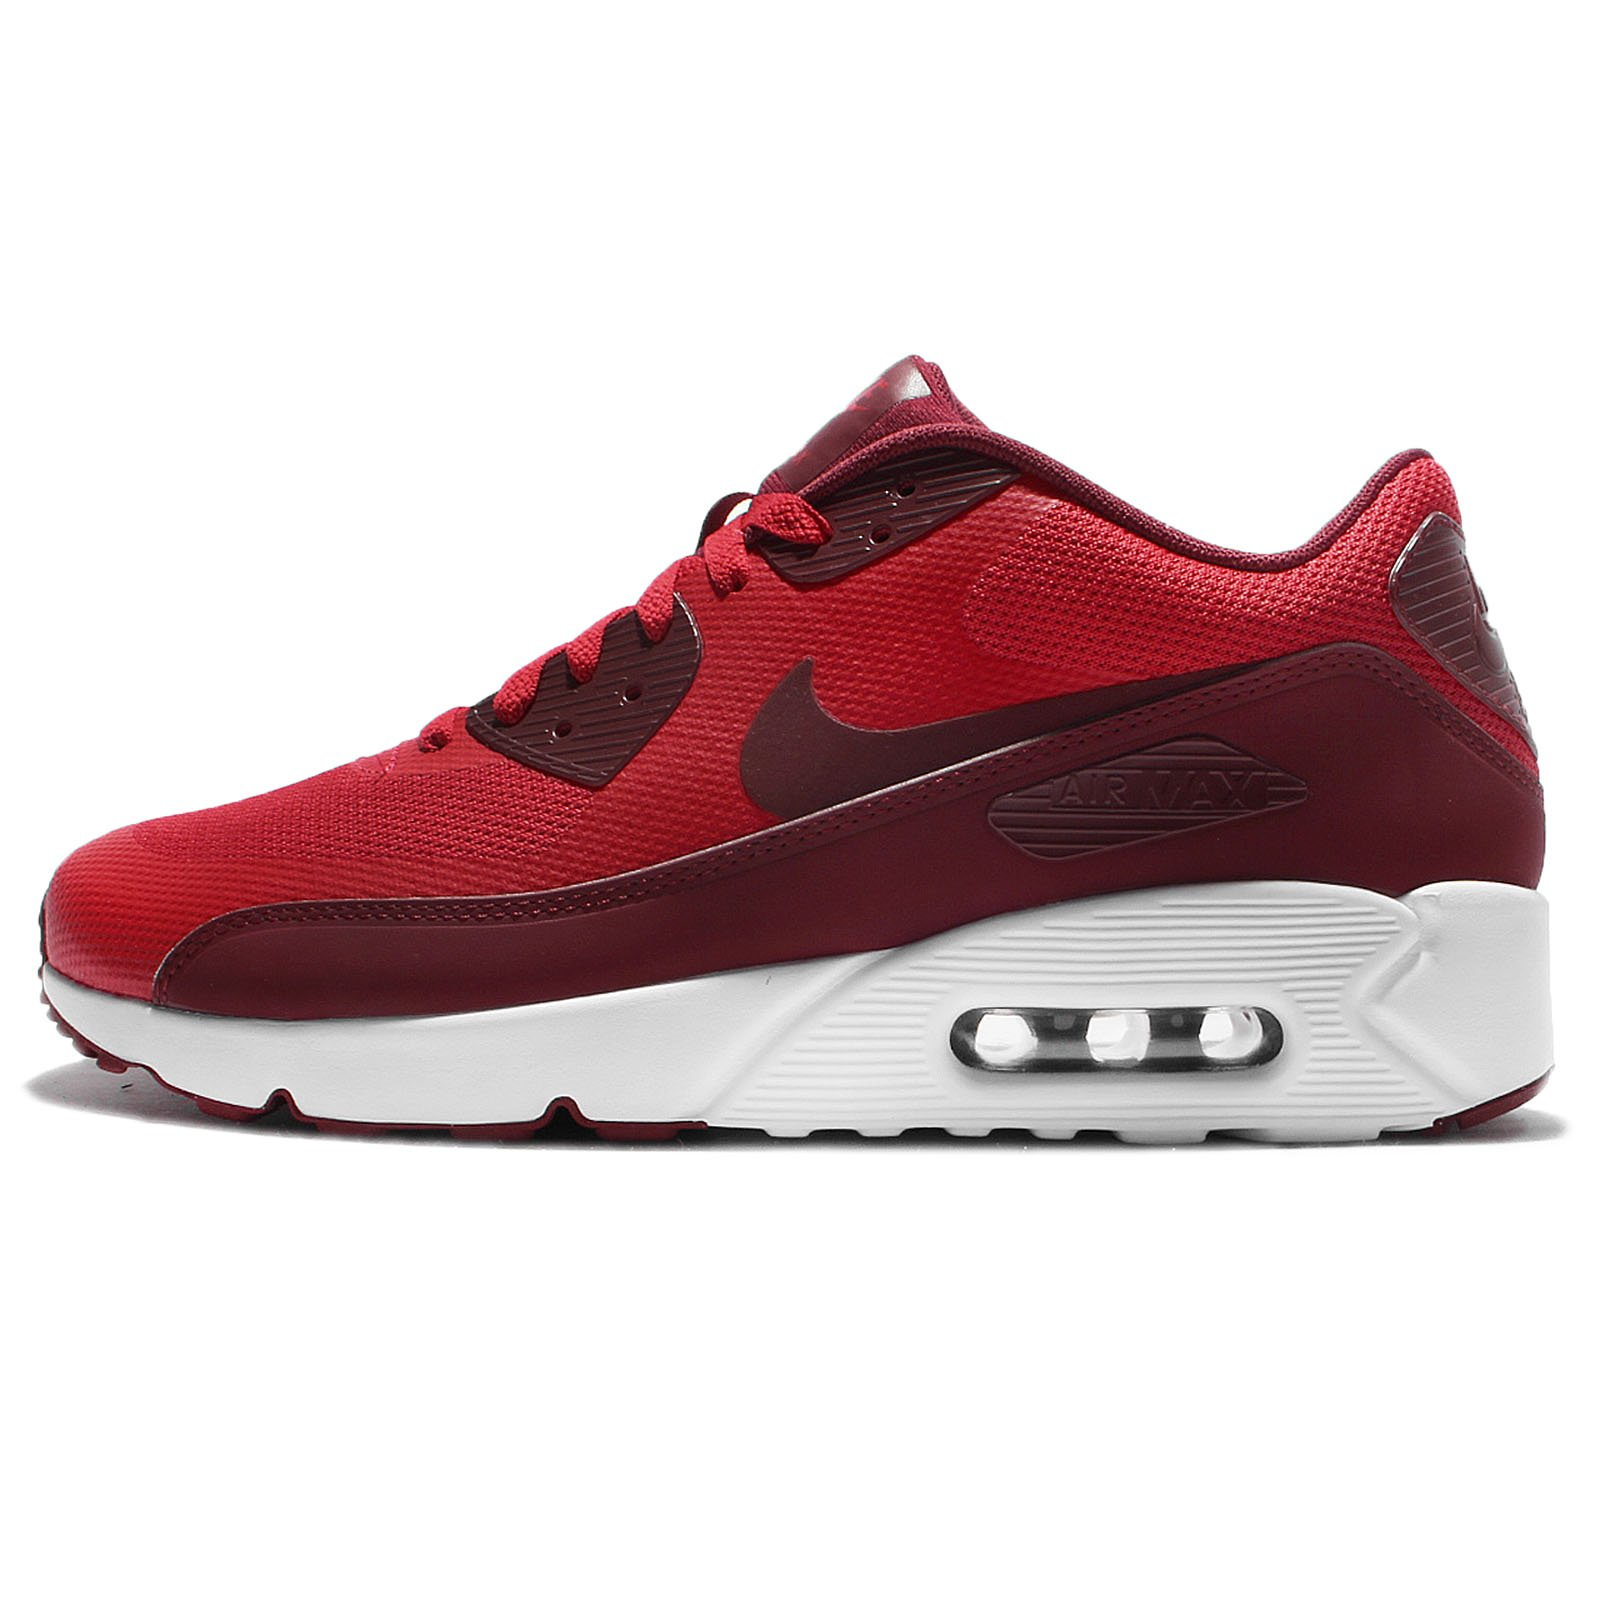 NIKE Men's Air Max 90 Ultra 2.0 Essential University RedTeam RedWhite Running Shoe 10.5 Men US